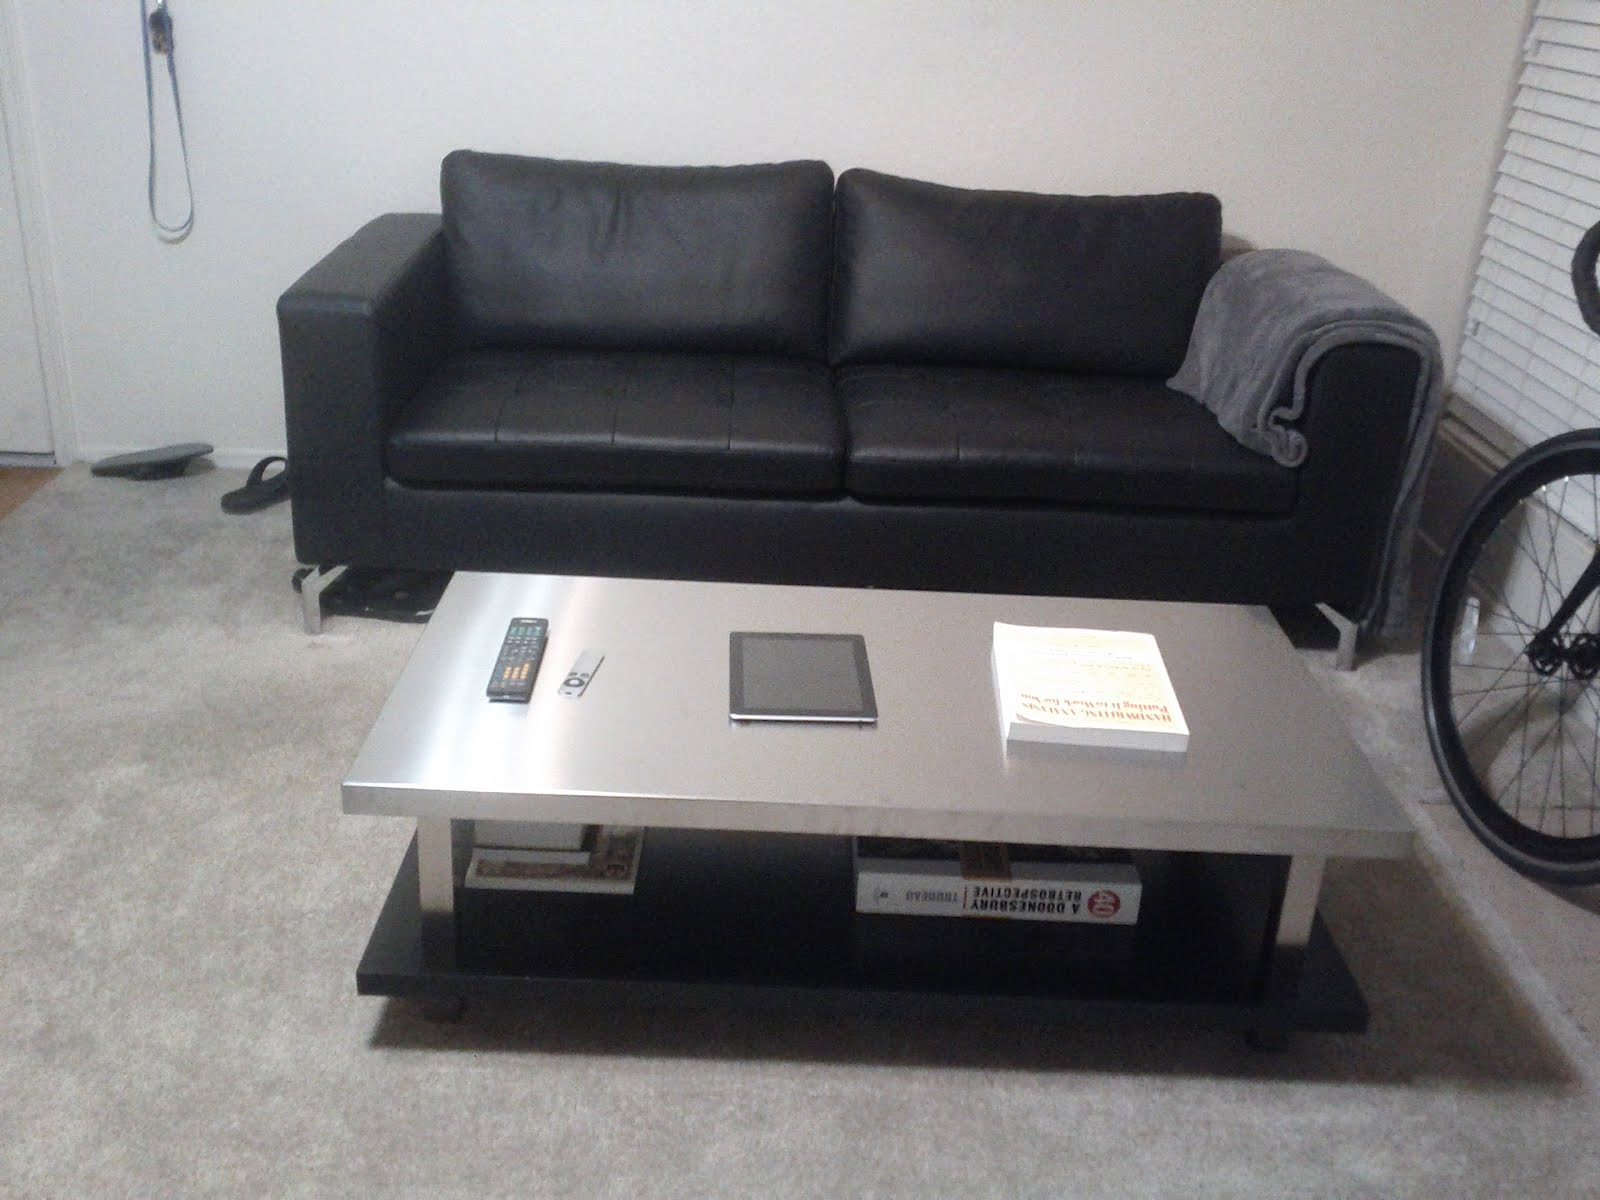 Double Layer Coffee Table IKEA Hackers IKEA Hackers